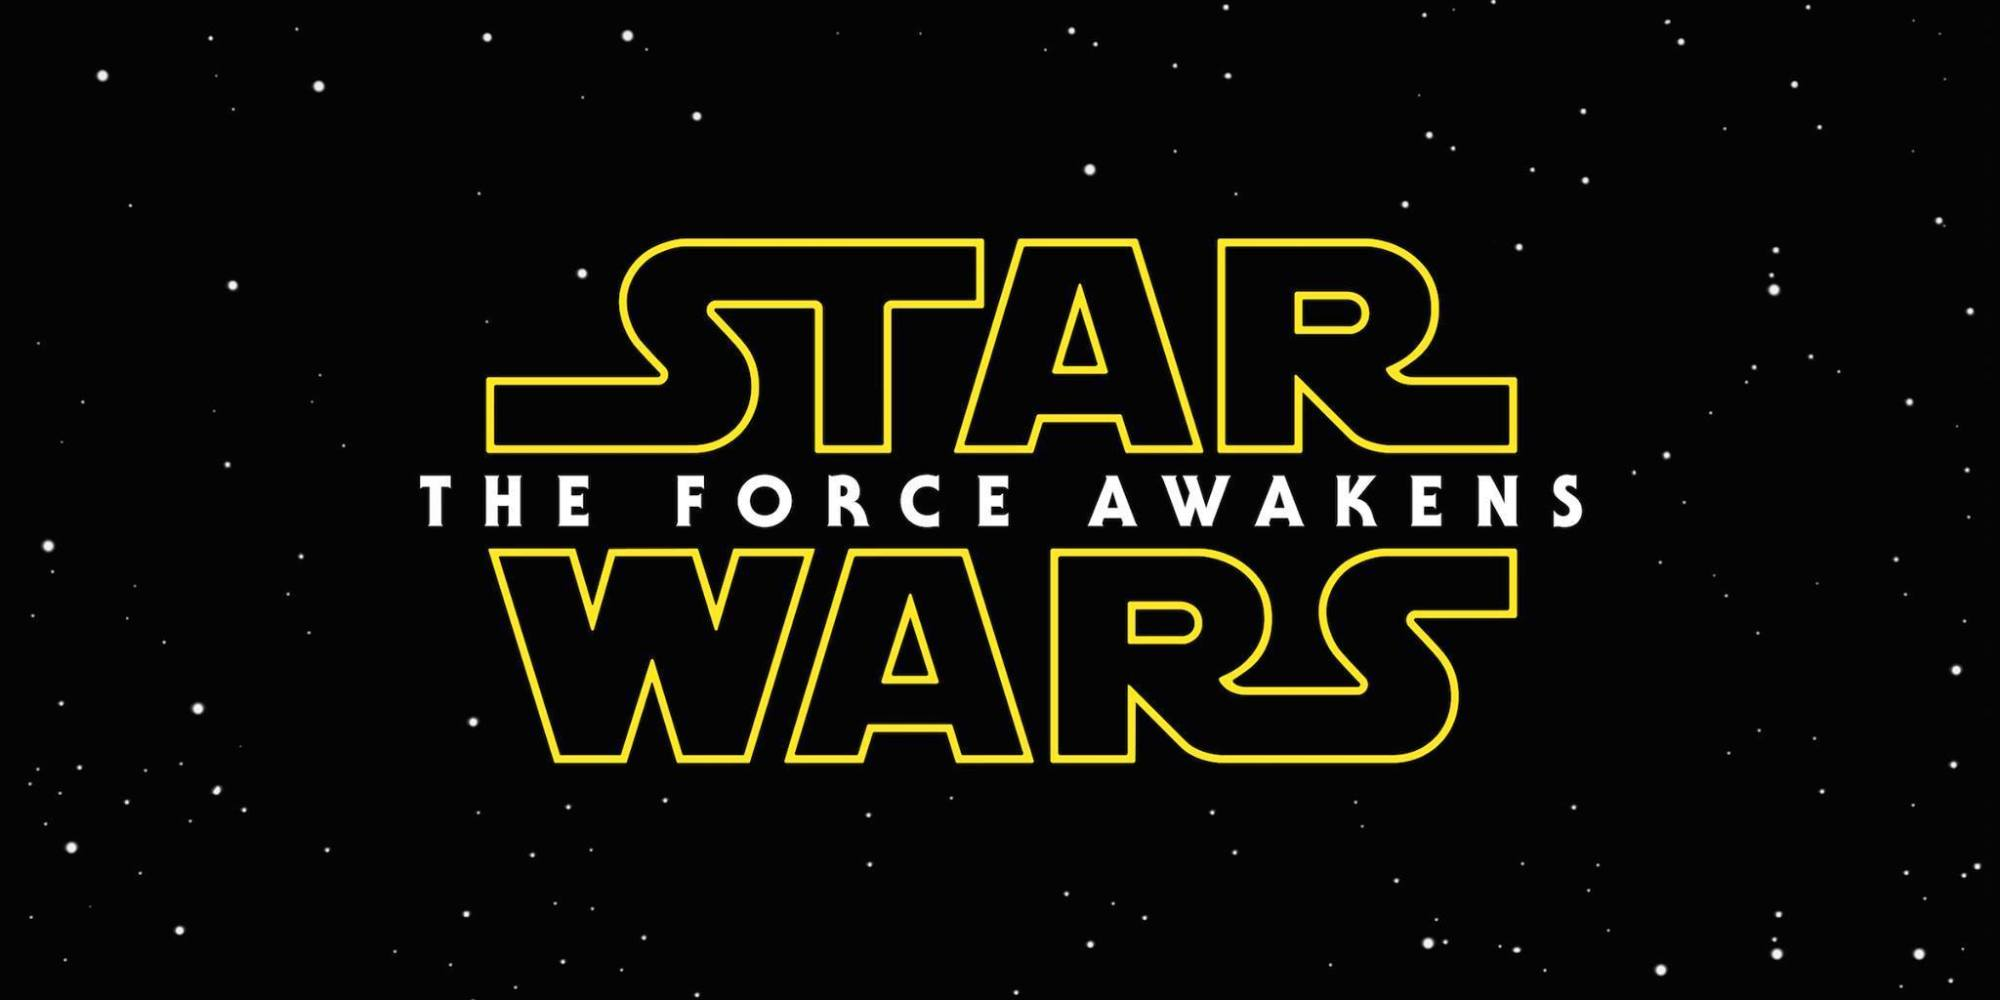 Star Wars Ep Vii Title Officially Announced The Force Awakens Apocaflix Movies